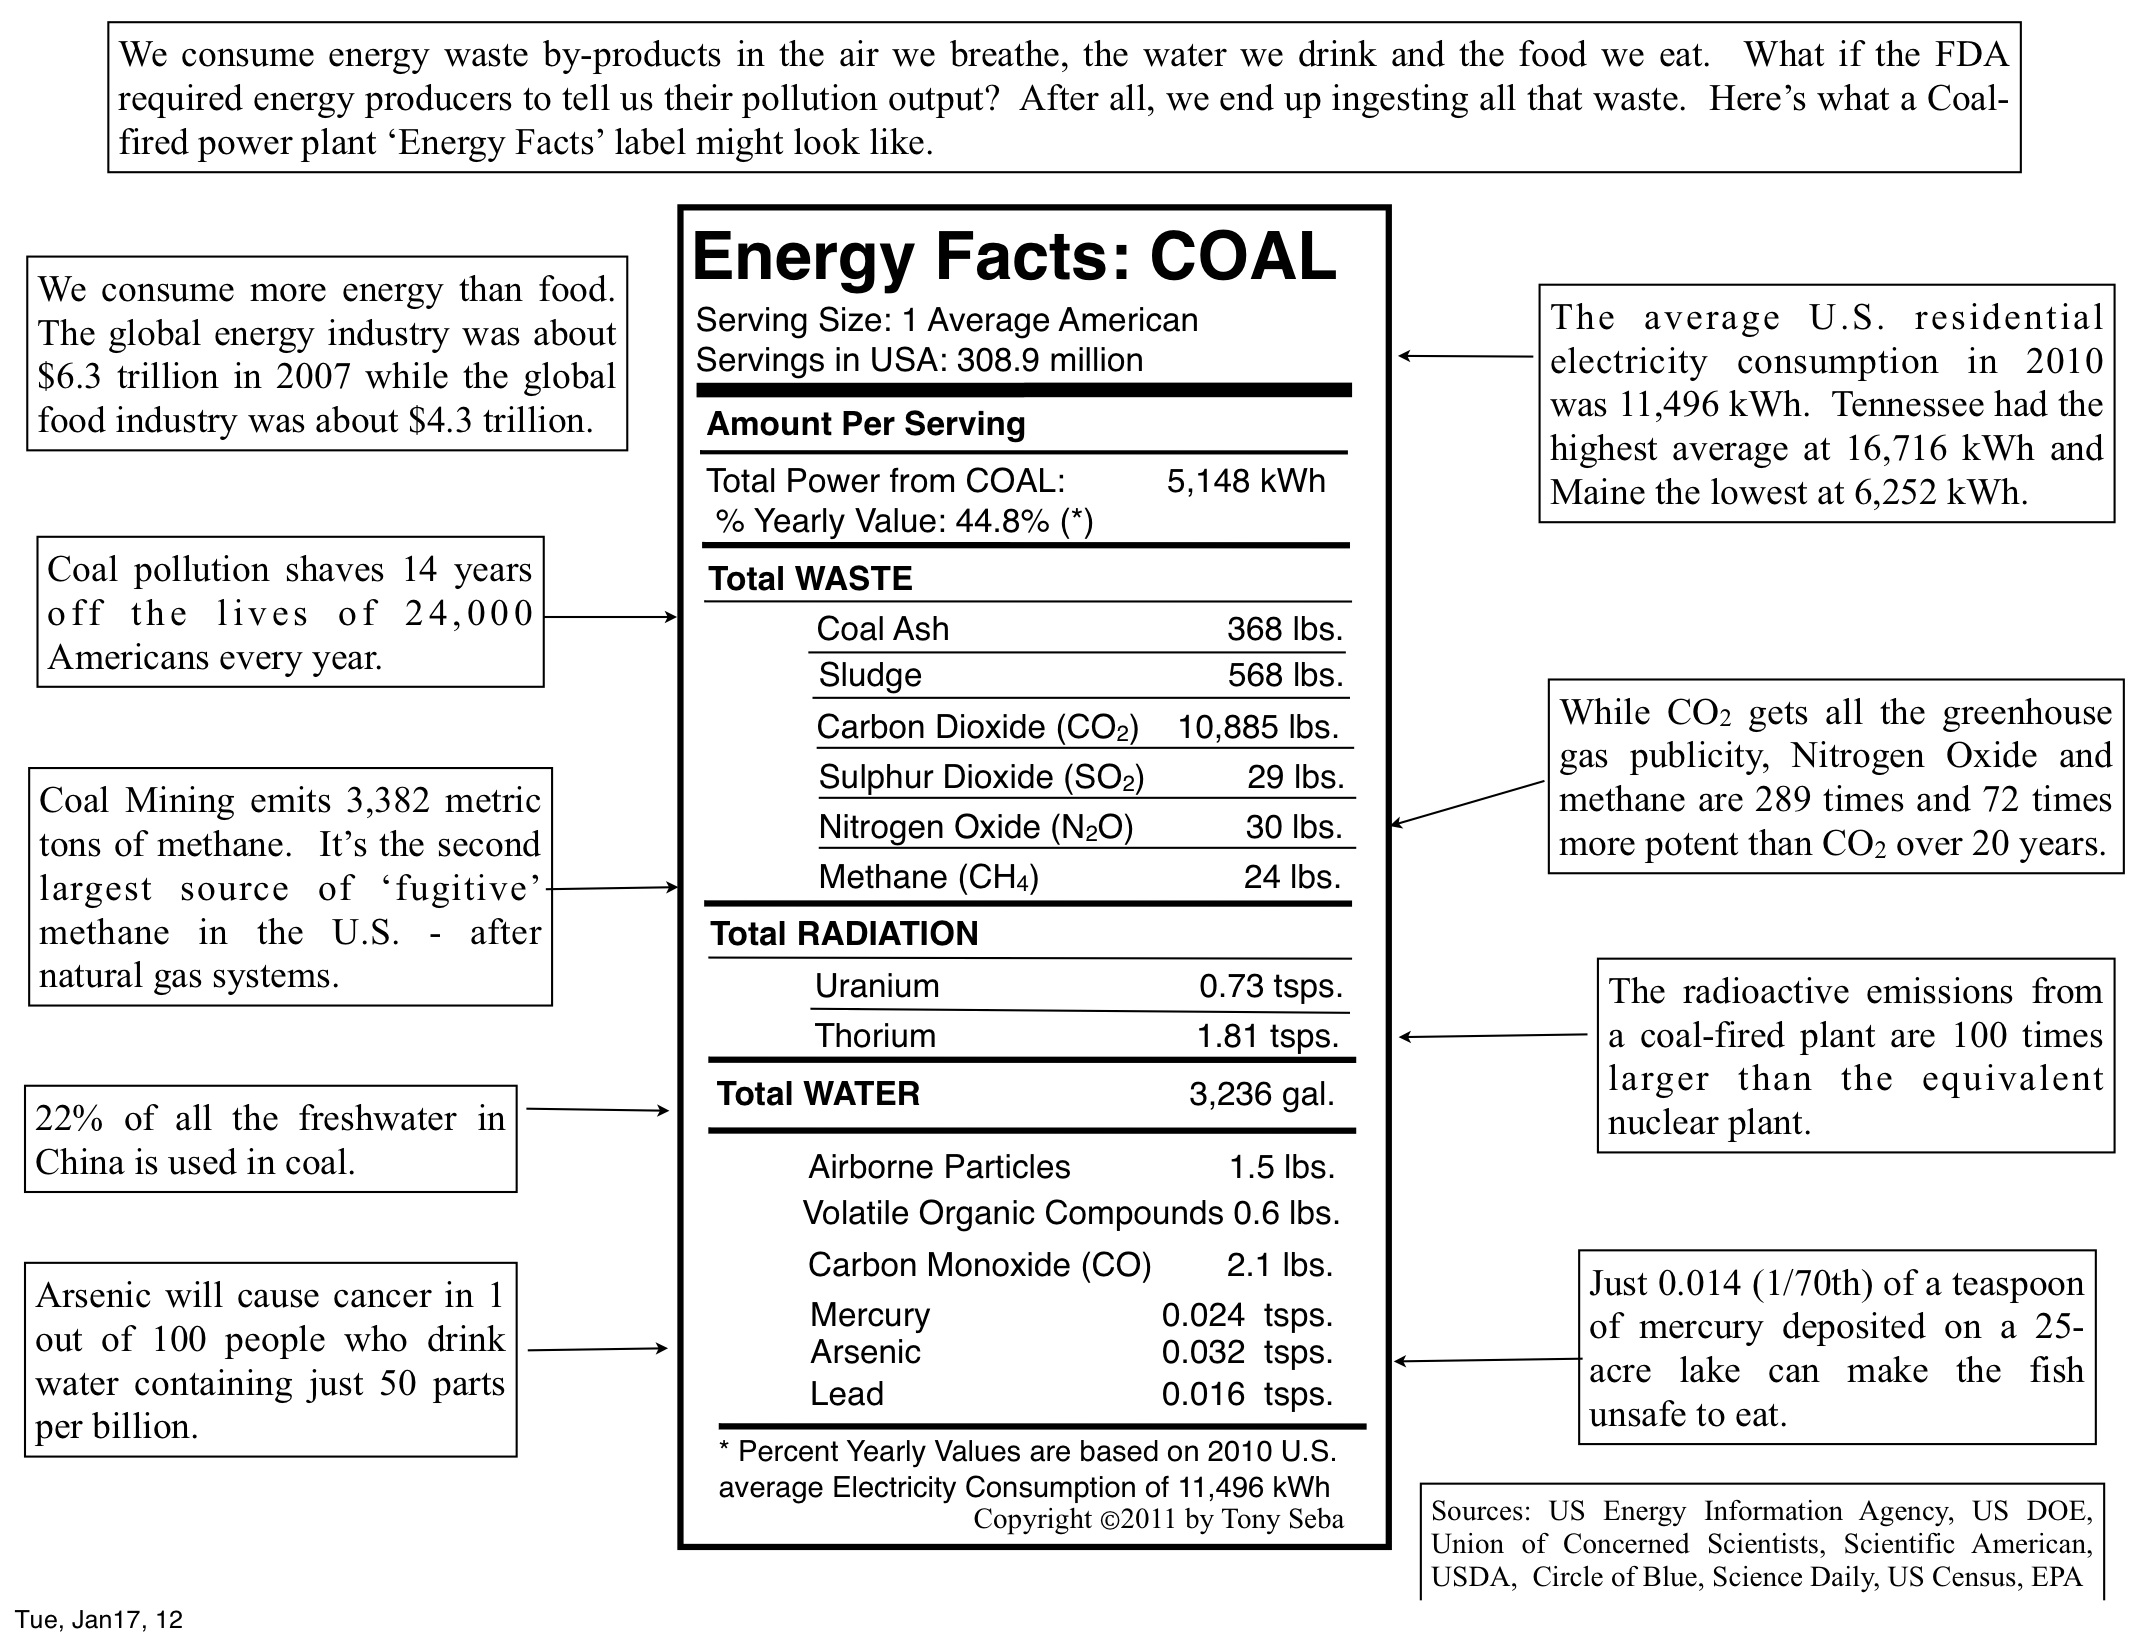 Energy Facts Label: COAL - Copyright © Tony Seba